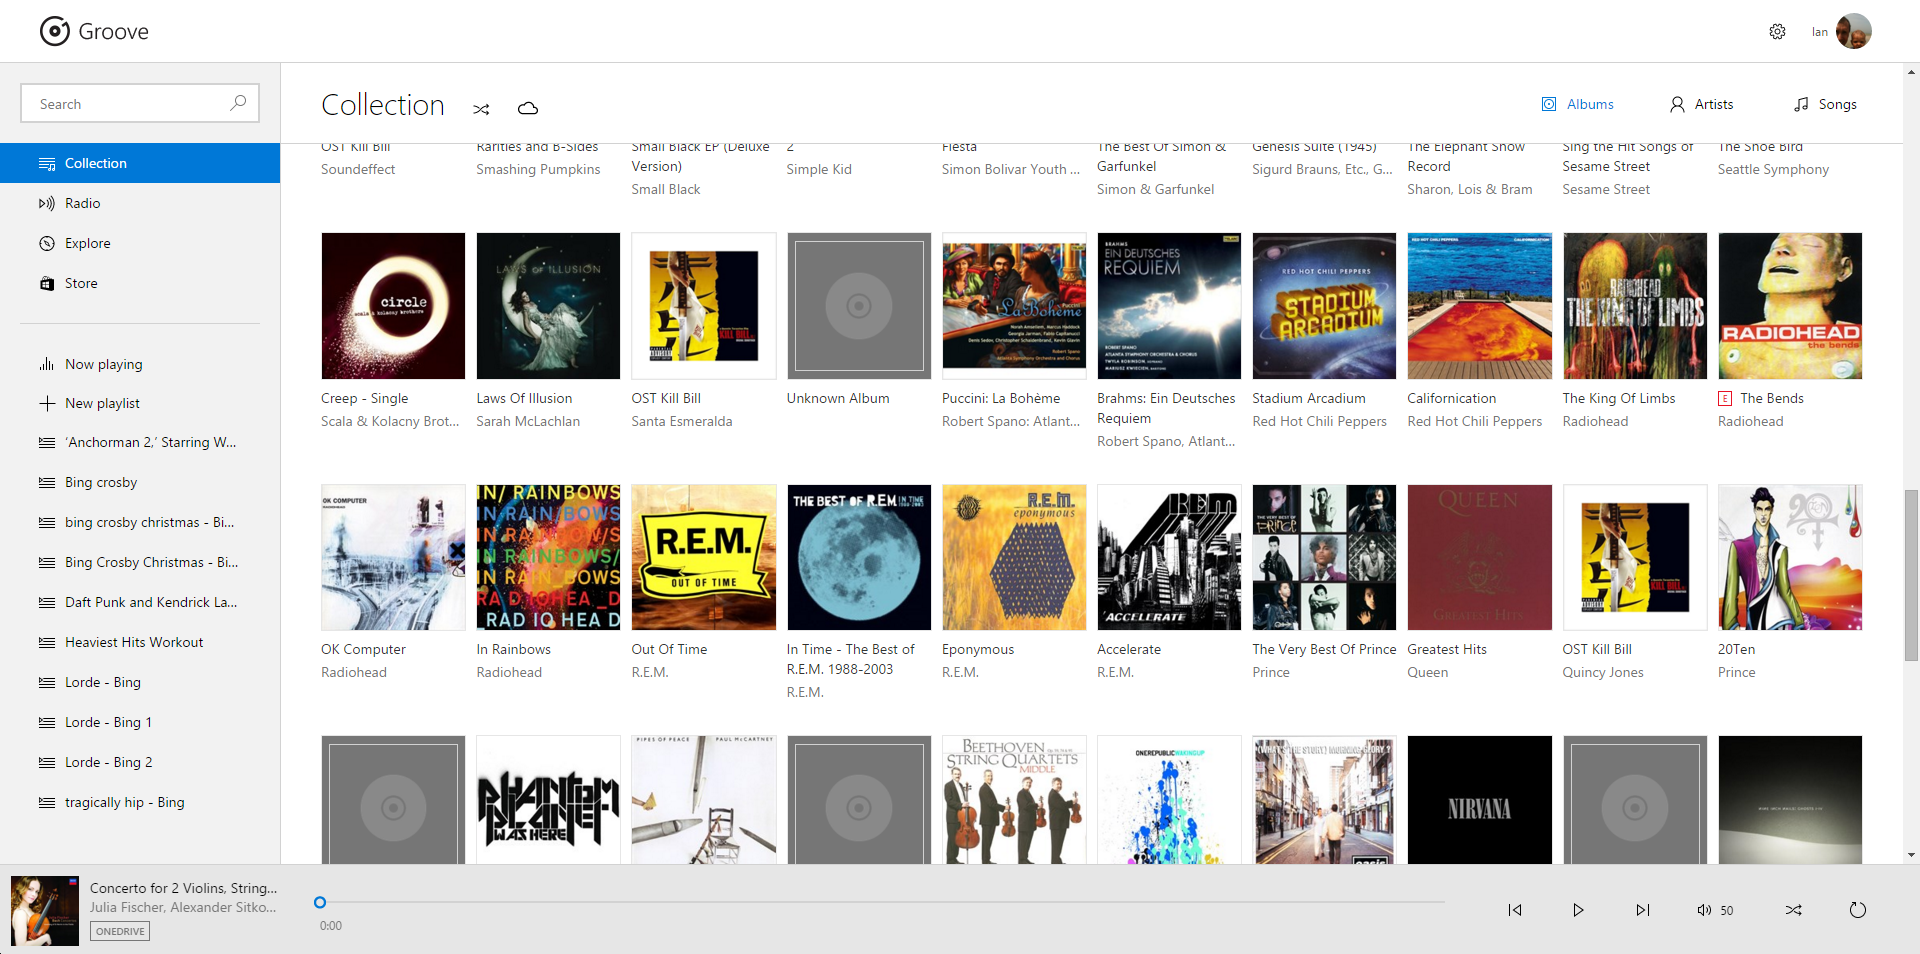 How to use Microsoft's OneDrive and Groove for music